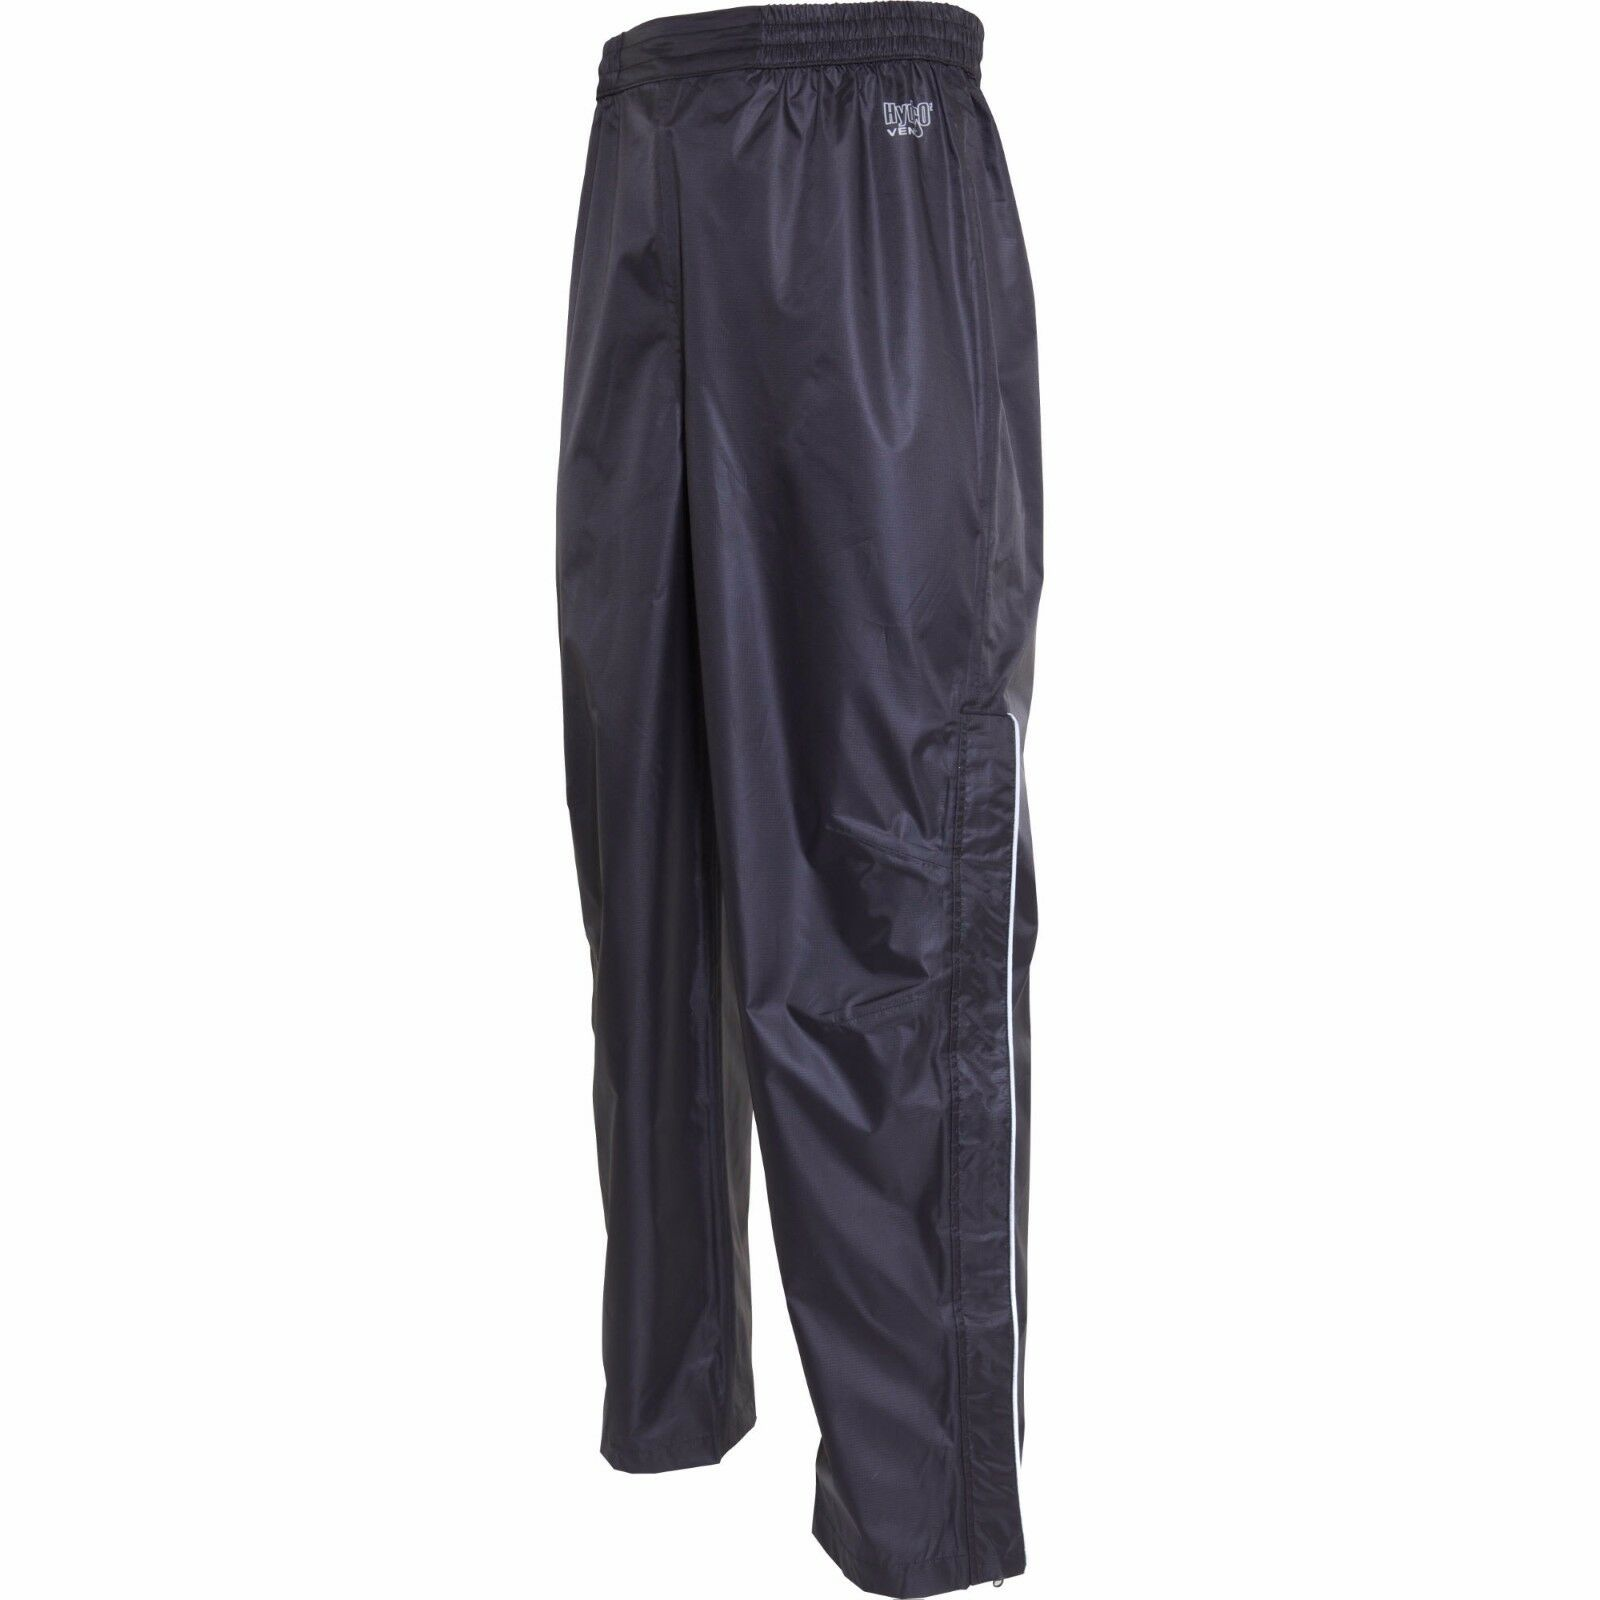 POLARIS SURGE WATERPROOF BREATHABLE CYCLE COMMUTE WET WEATHER OVER TROUSERS